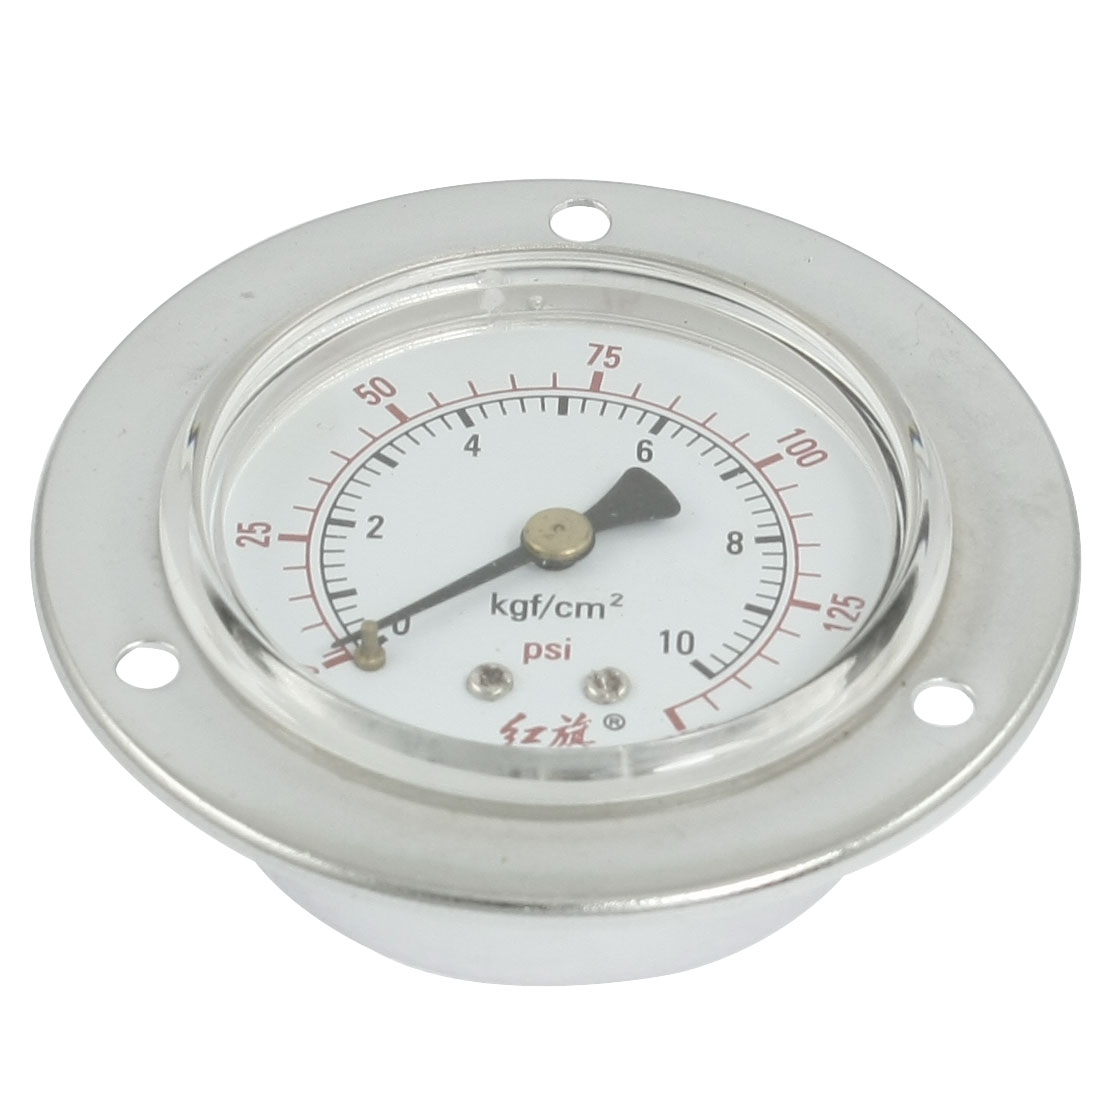 0-10Kgf/cm2 Round Face Compressor Metal Air Pressure Gauge 1/4""